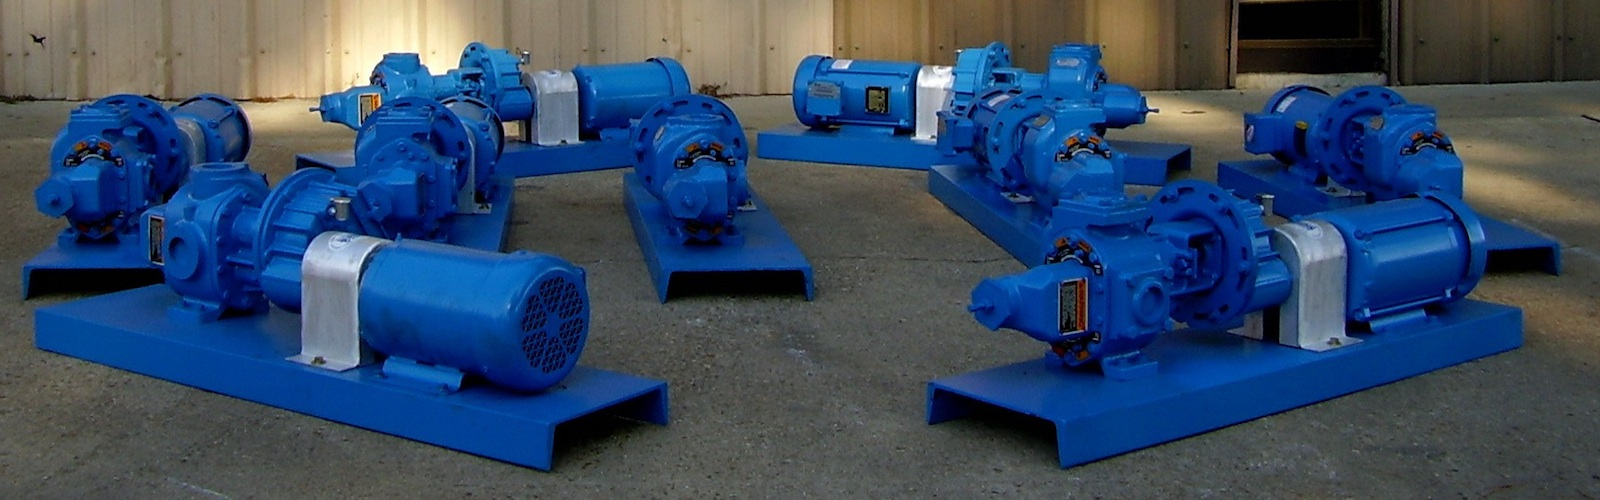 Whitco Pump & Equipment